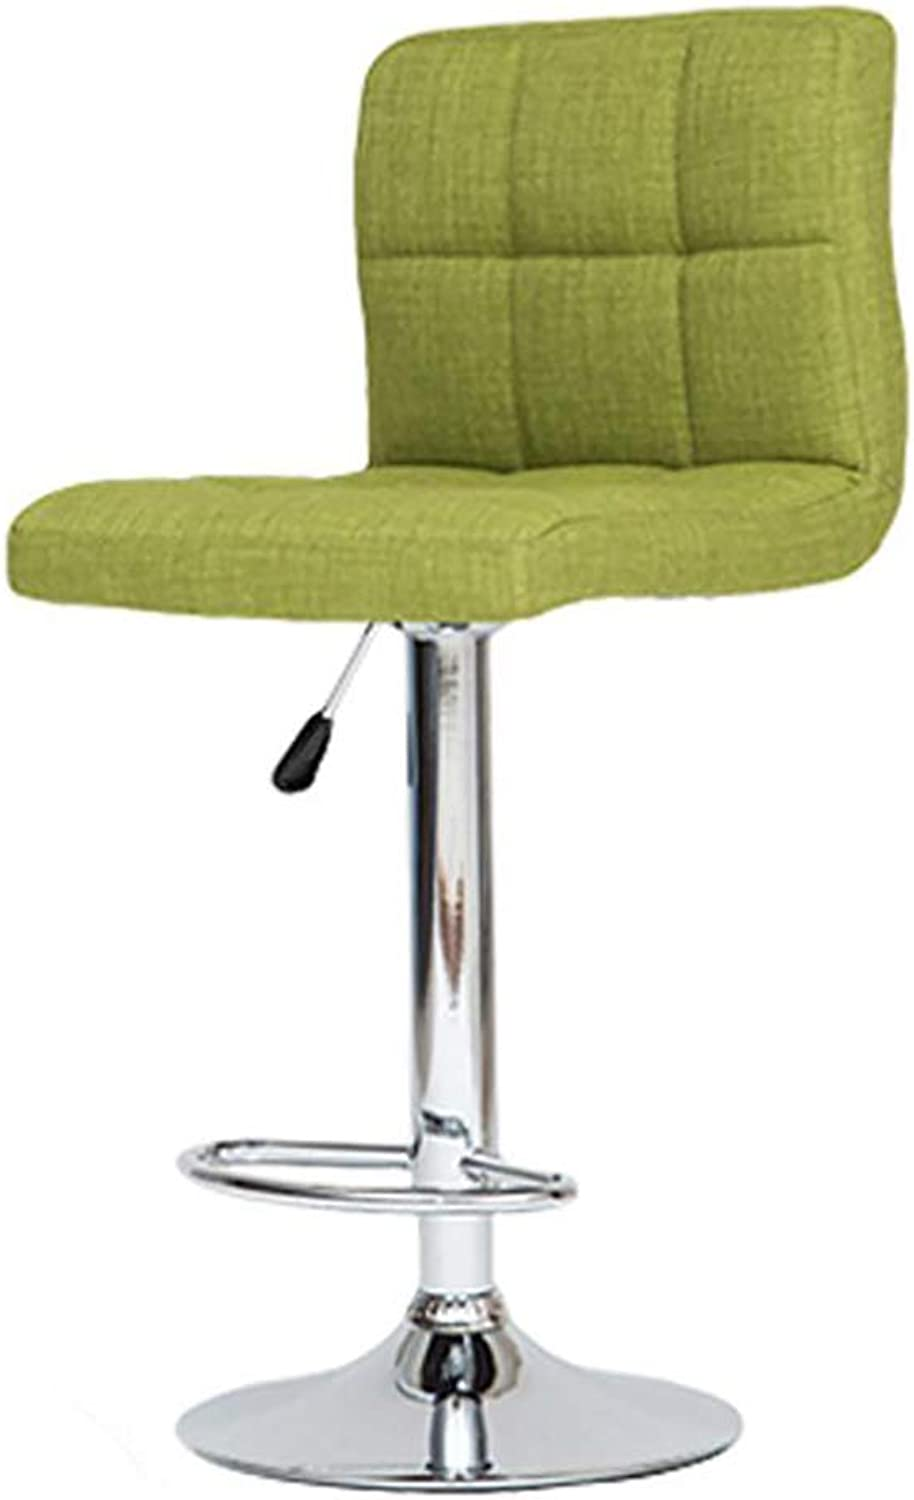 Adjustable bar Chair - Freely redating and Lifting Dining Chair, Living Room Meeting Chair-Green